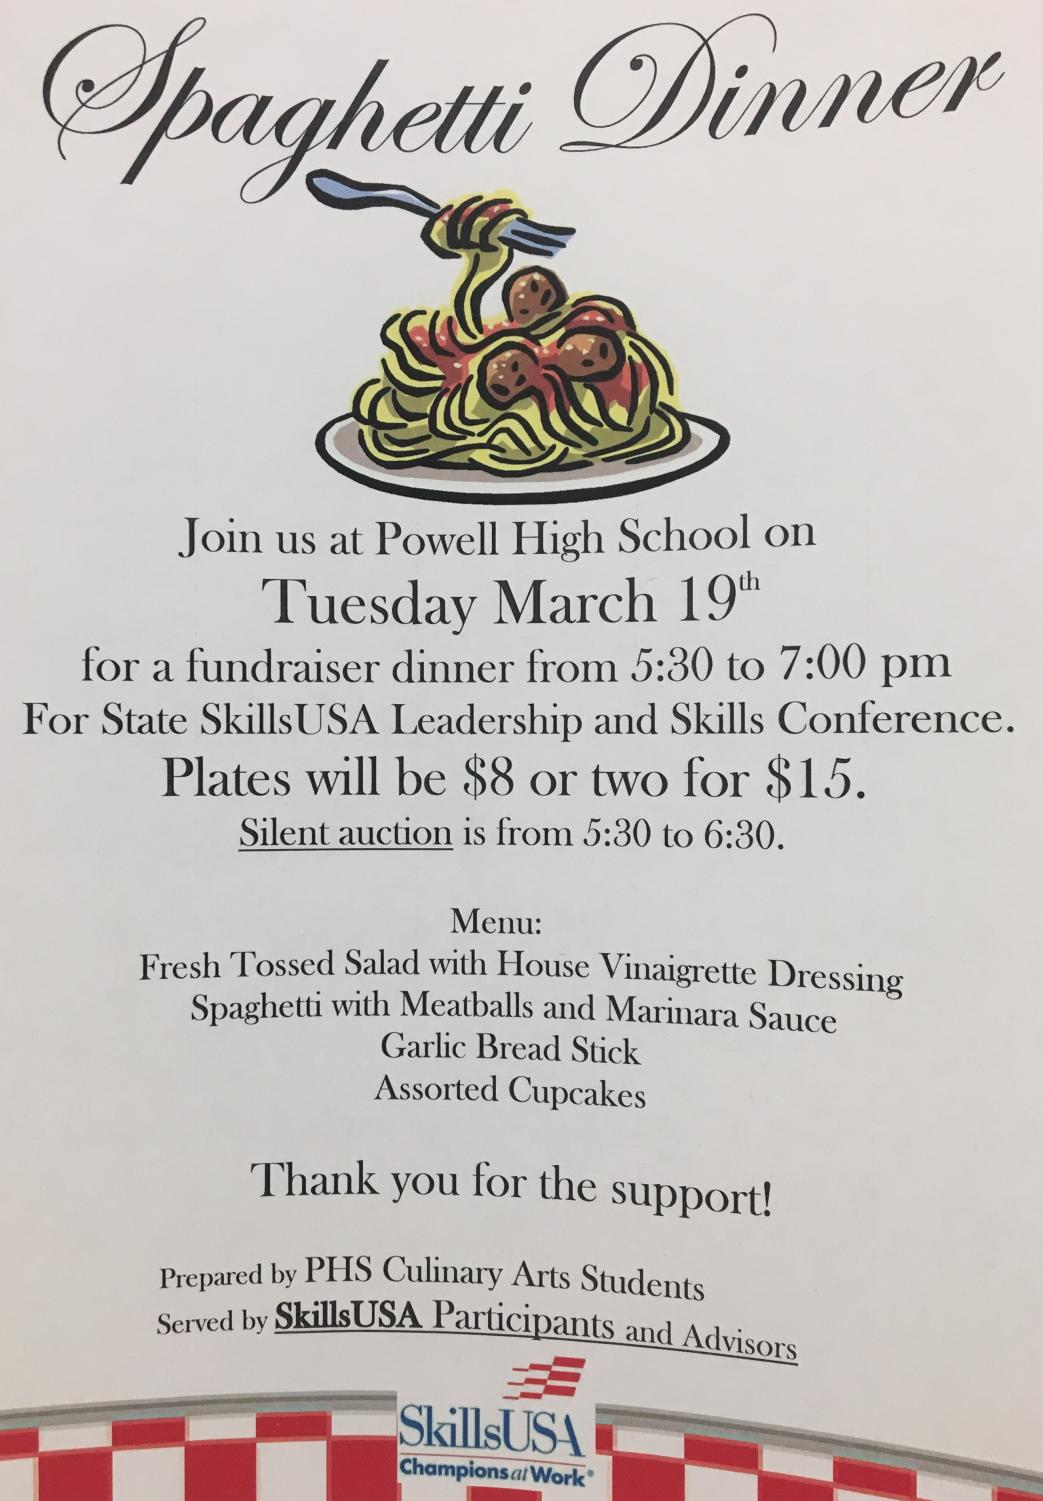 The Skills USA dinner will be on Tuesday March 19. The fundraiser will be from 5:30 to 7 p.m.